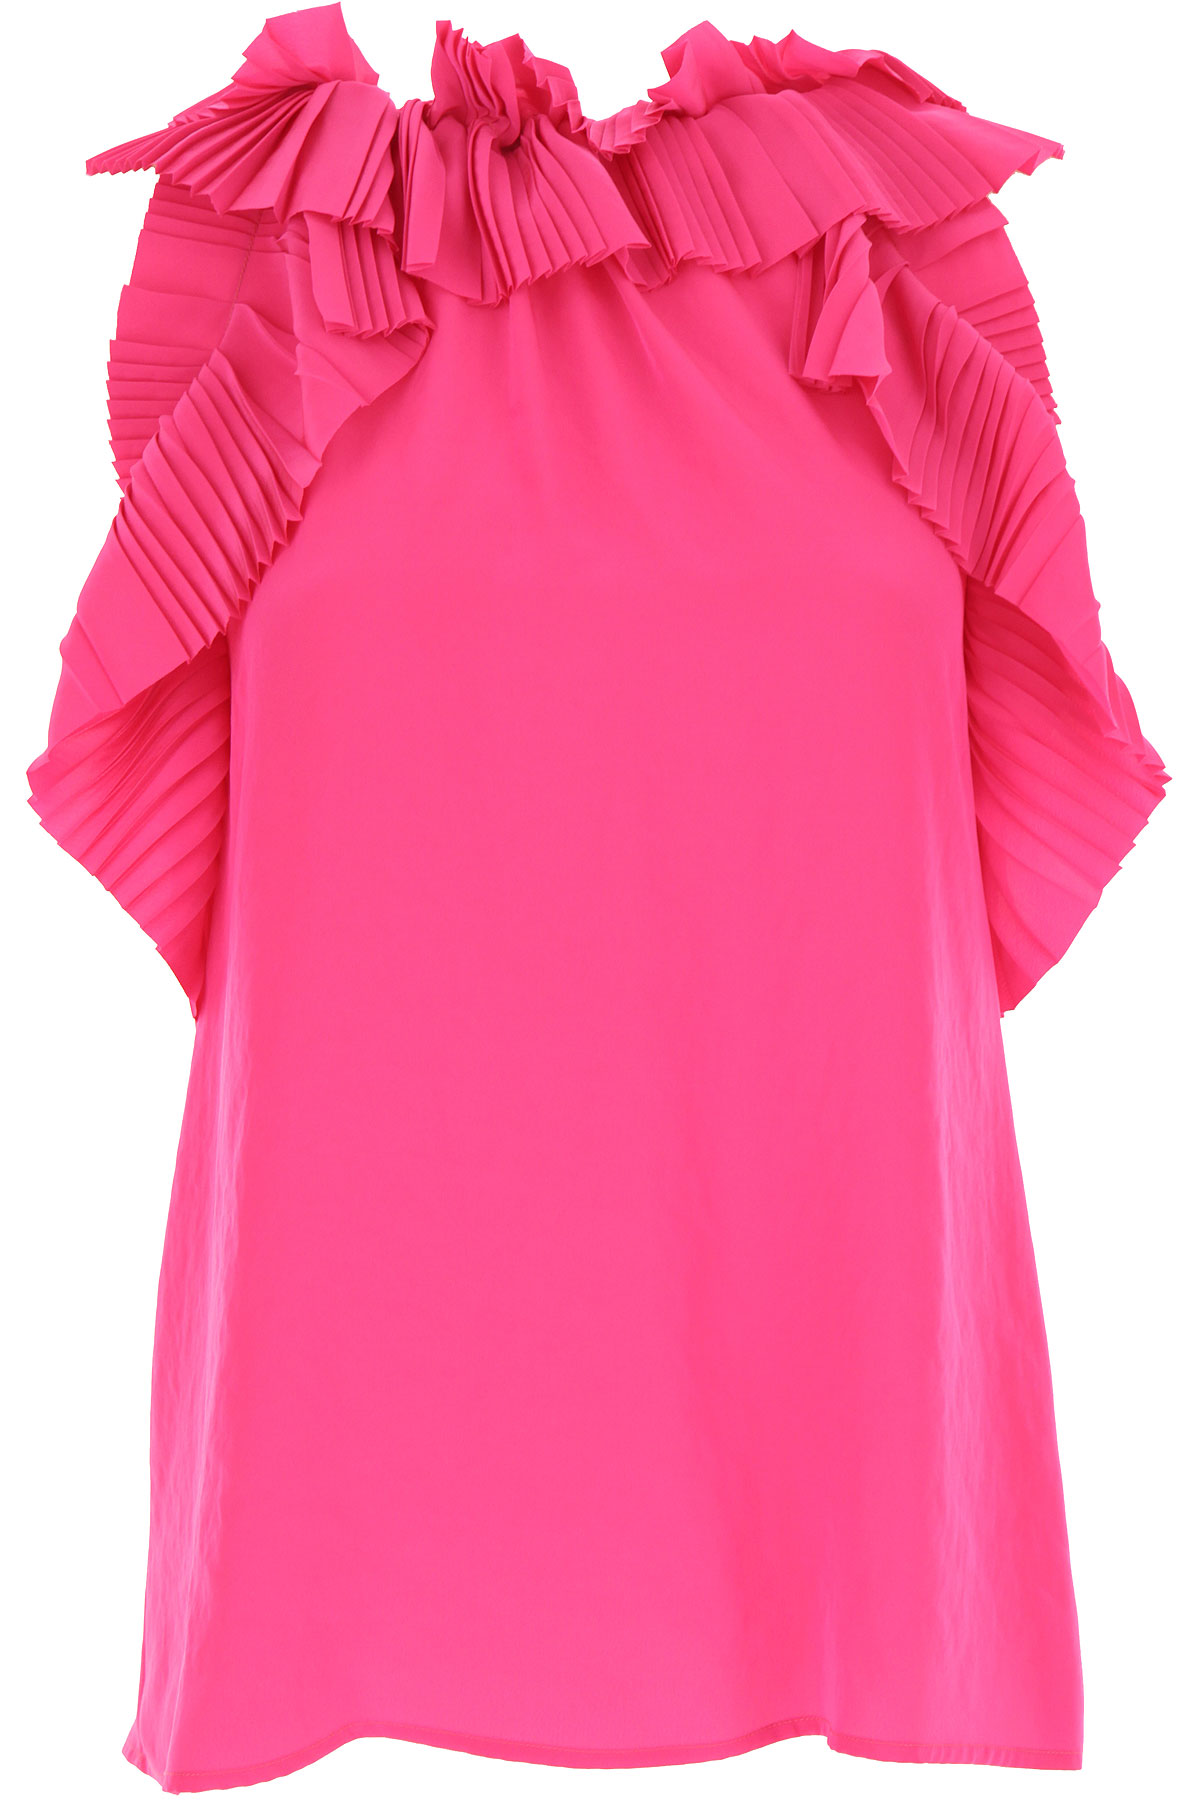 P.A.R.O.S.H. Top for Women On Sale, Fuchsia, polyester, 2019, 2 4 6